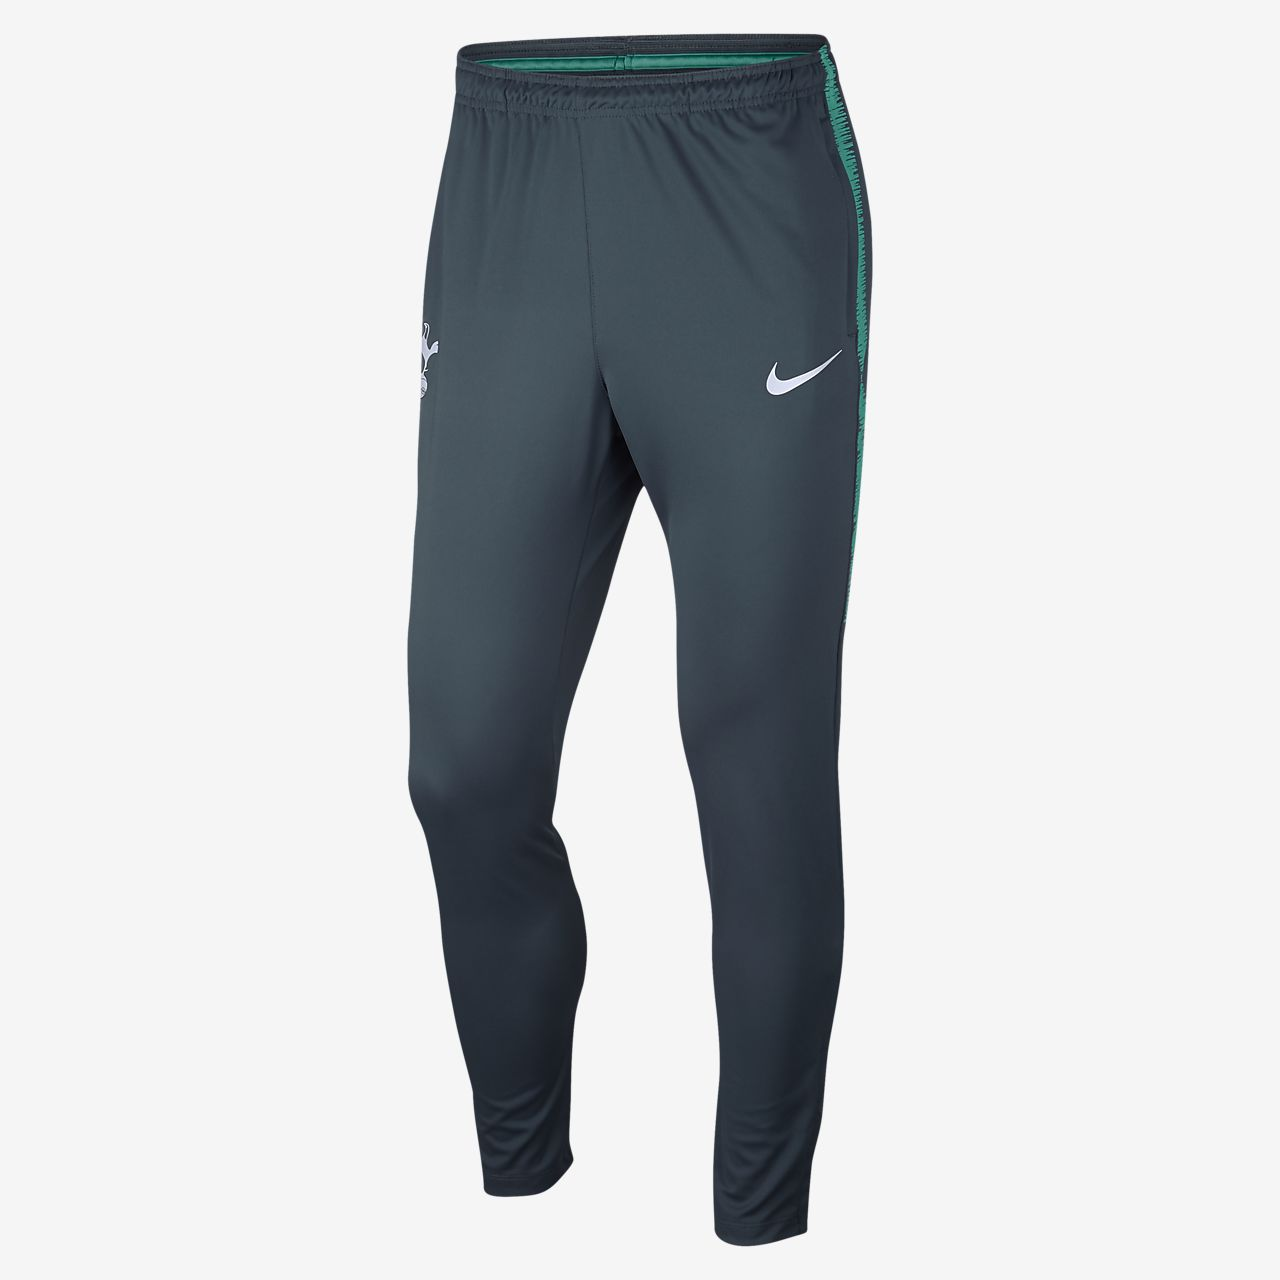 Tottenham Hotspur Dri-FIT Squad Men's Football Track Pants